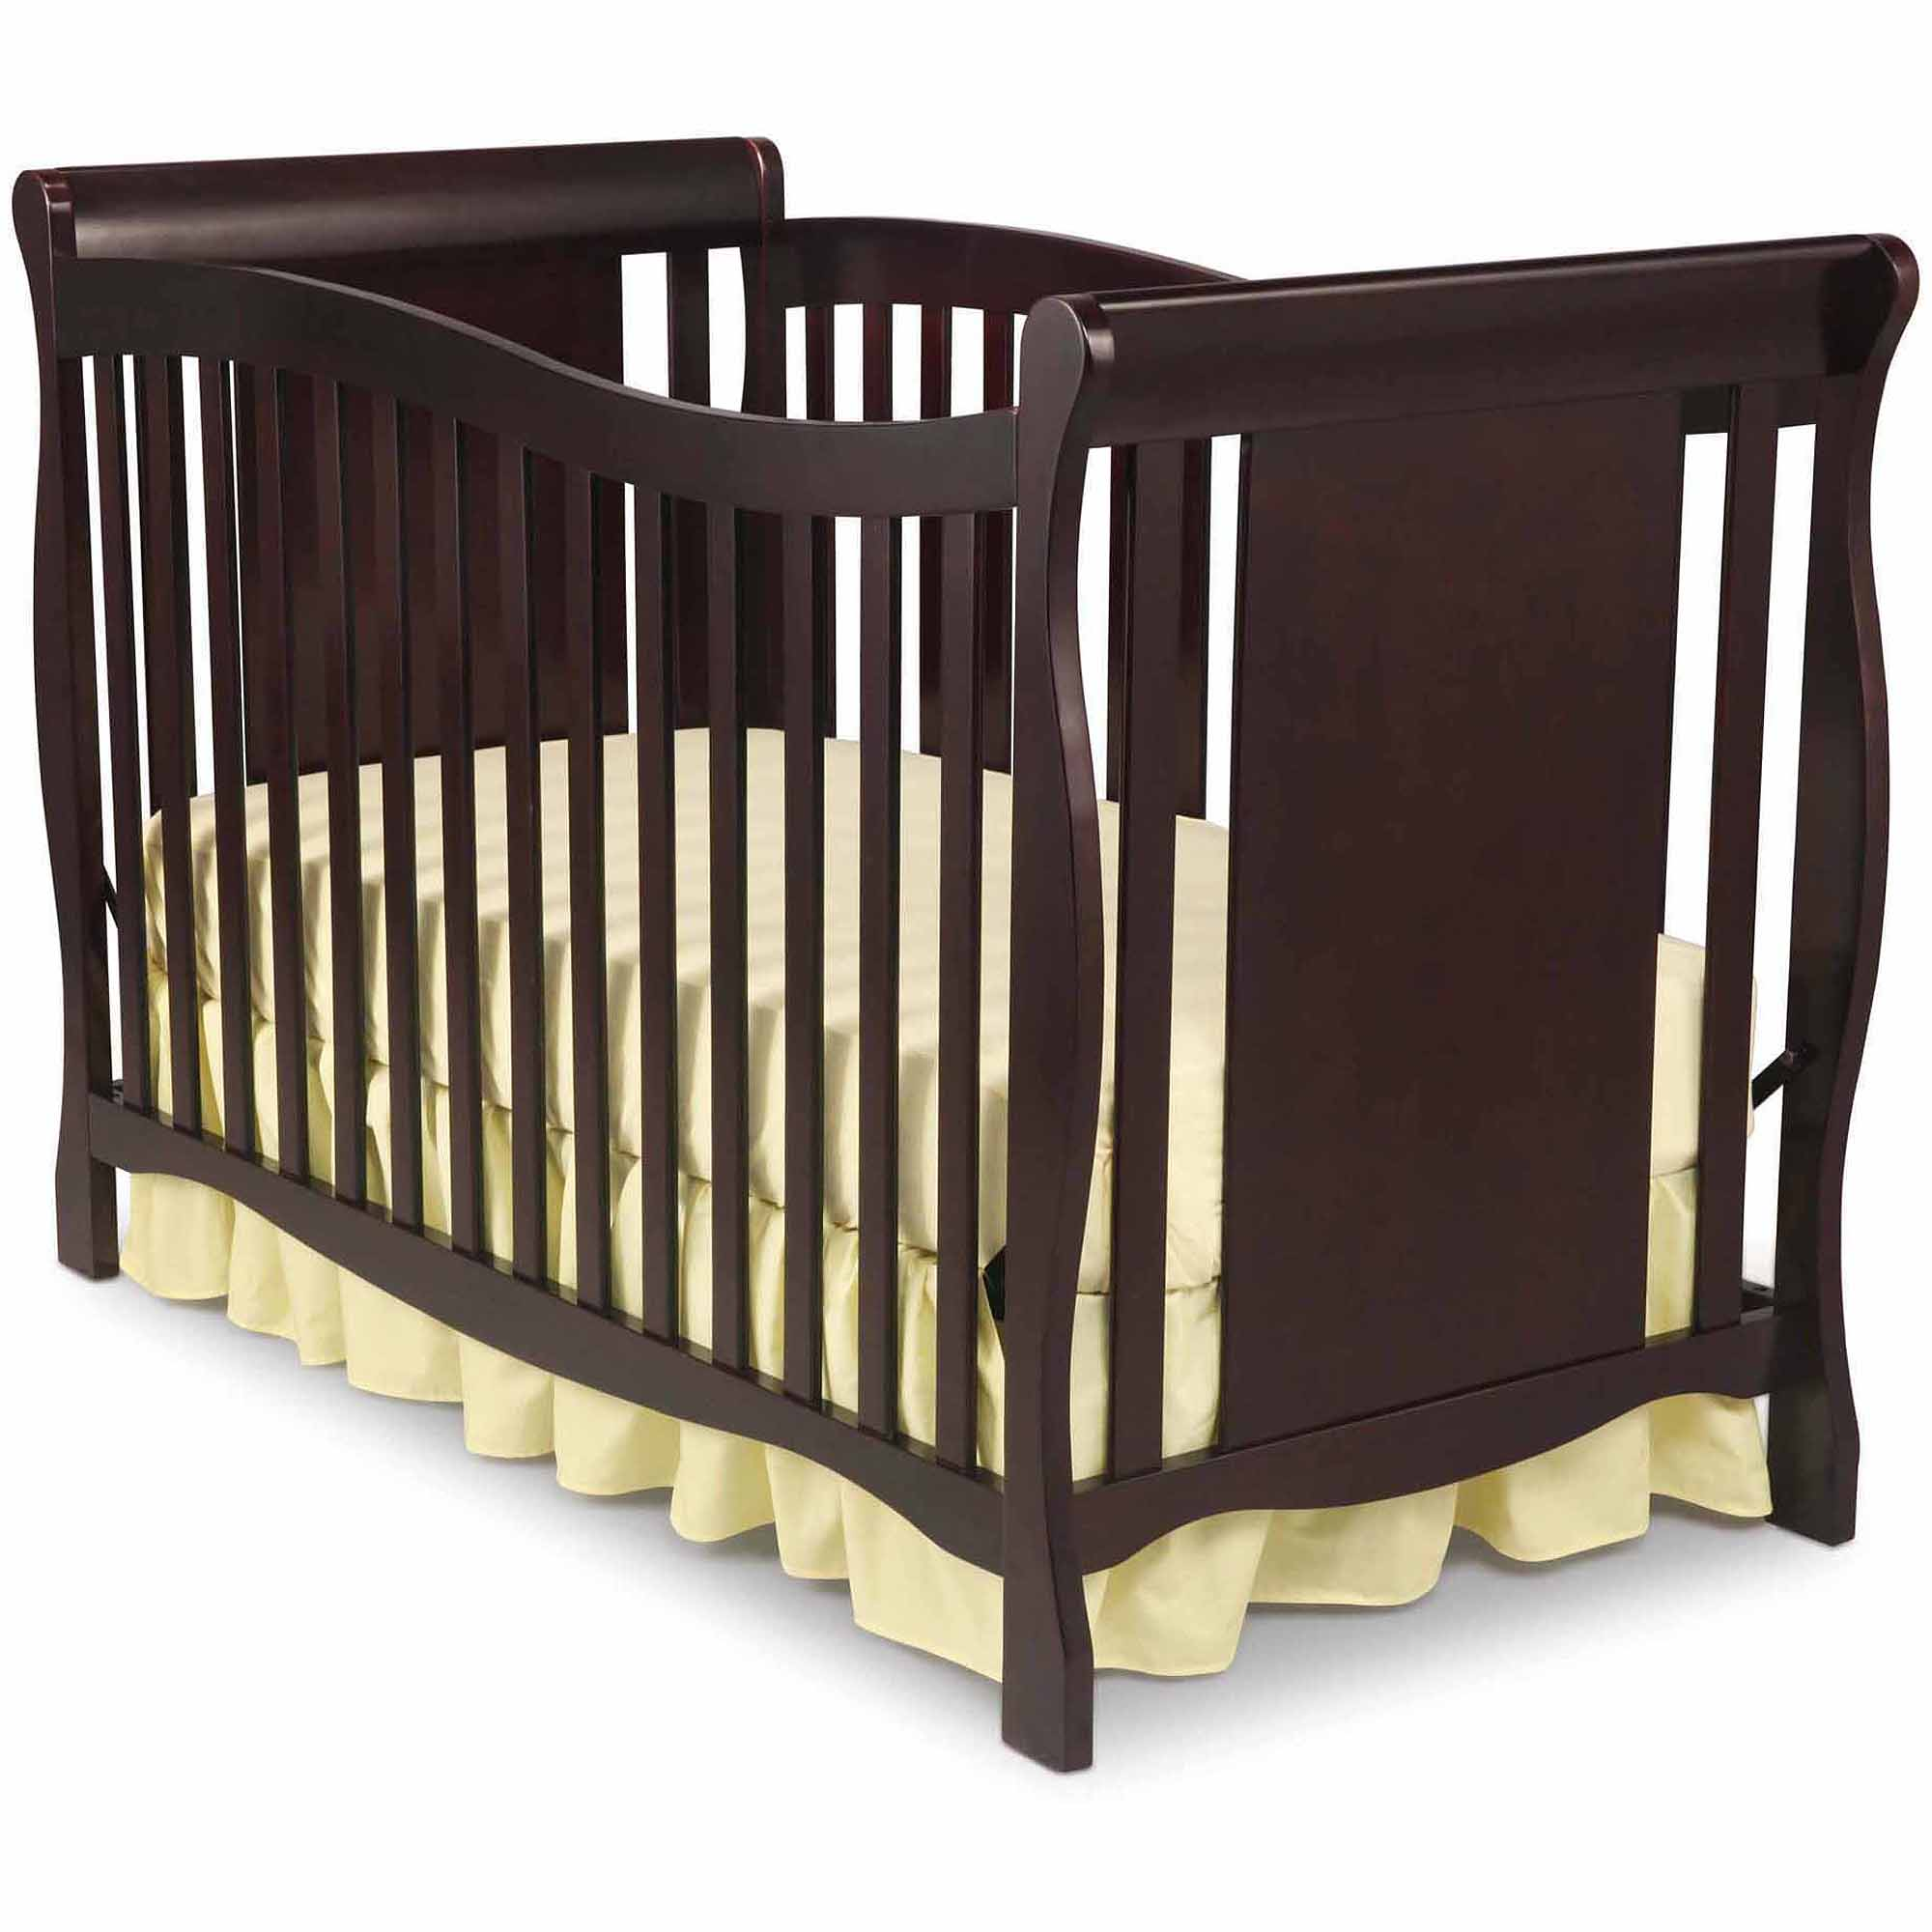 delta children brookside 4in1 convertible crib dark chocolate walmartcom